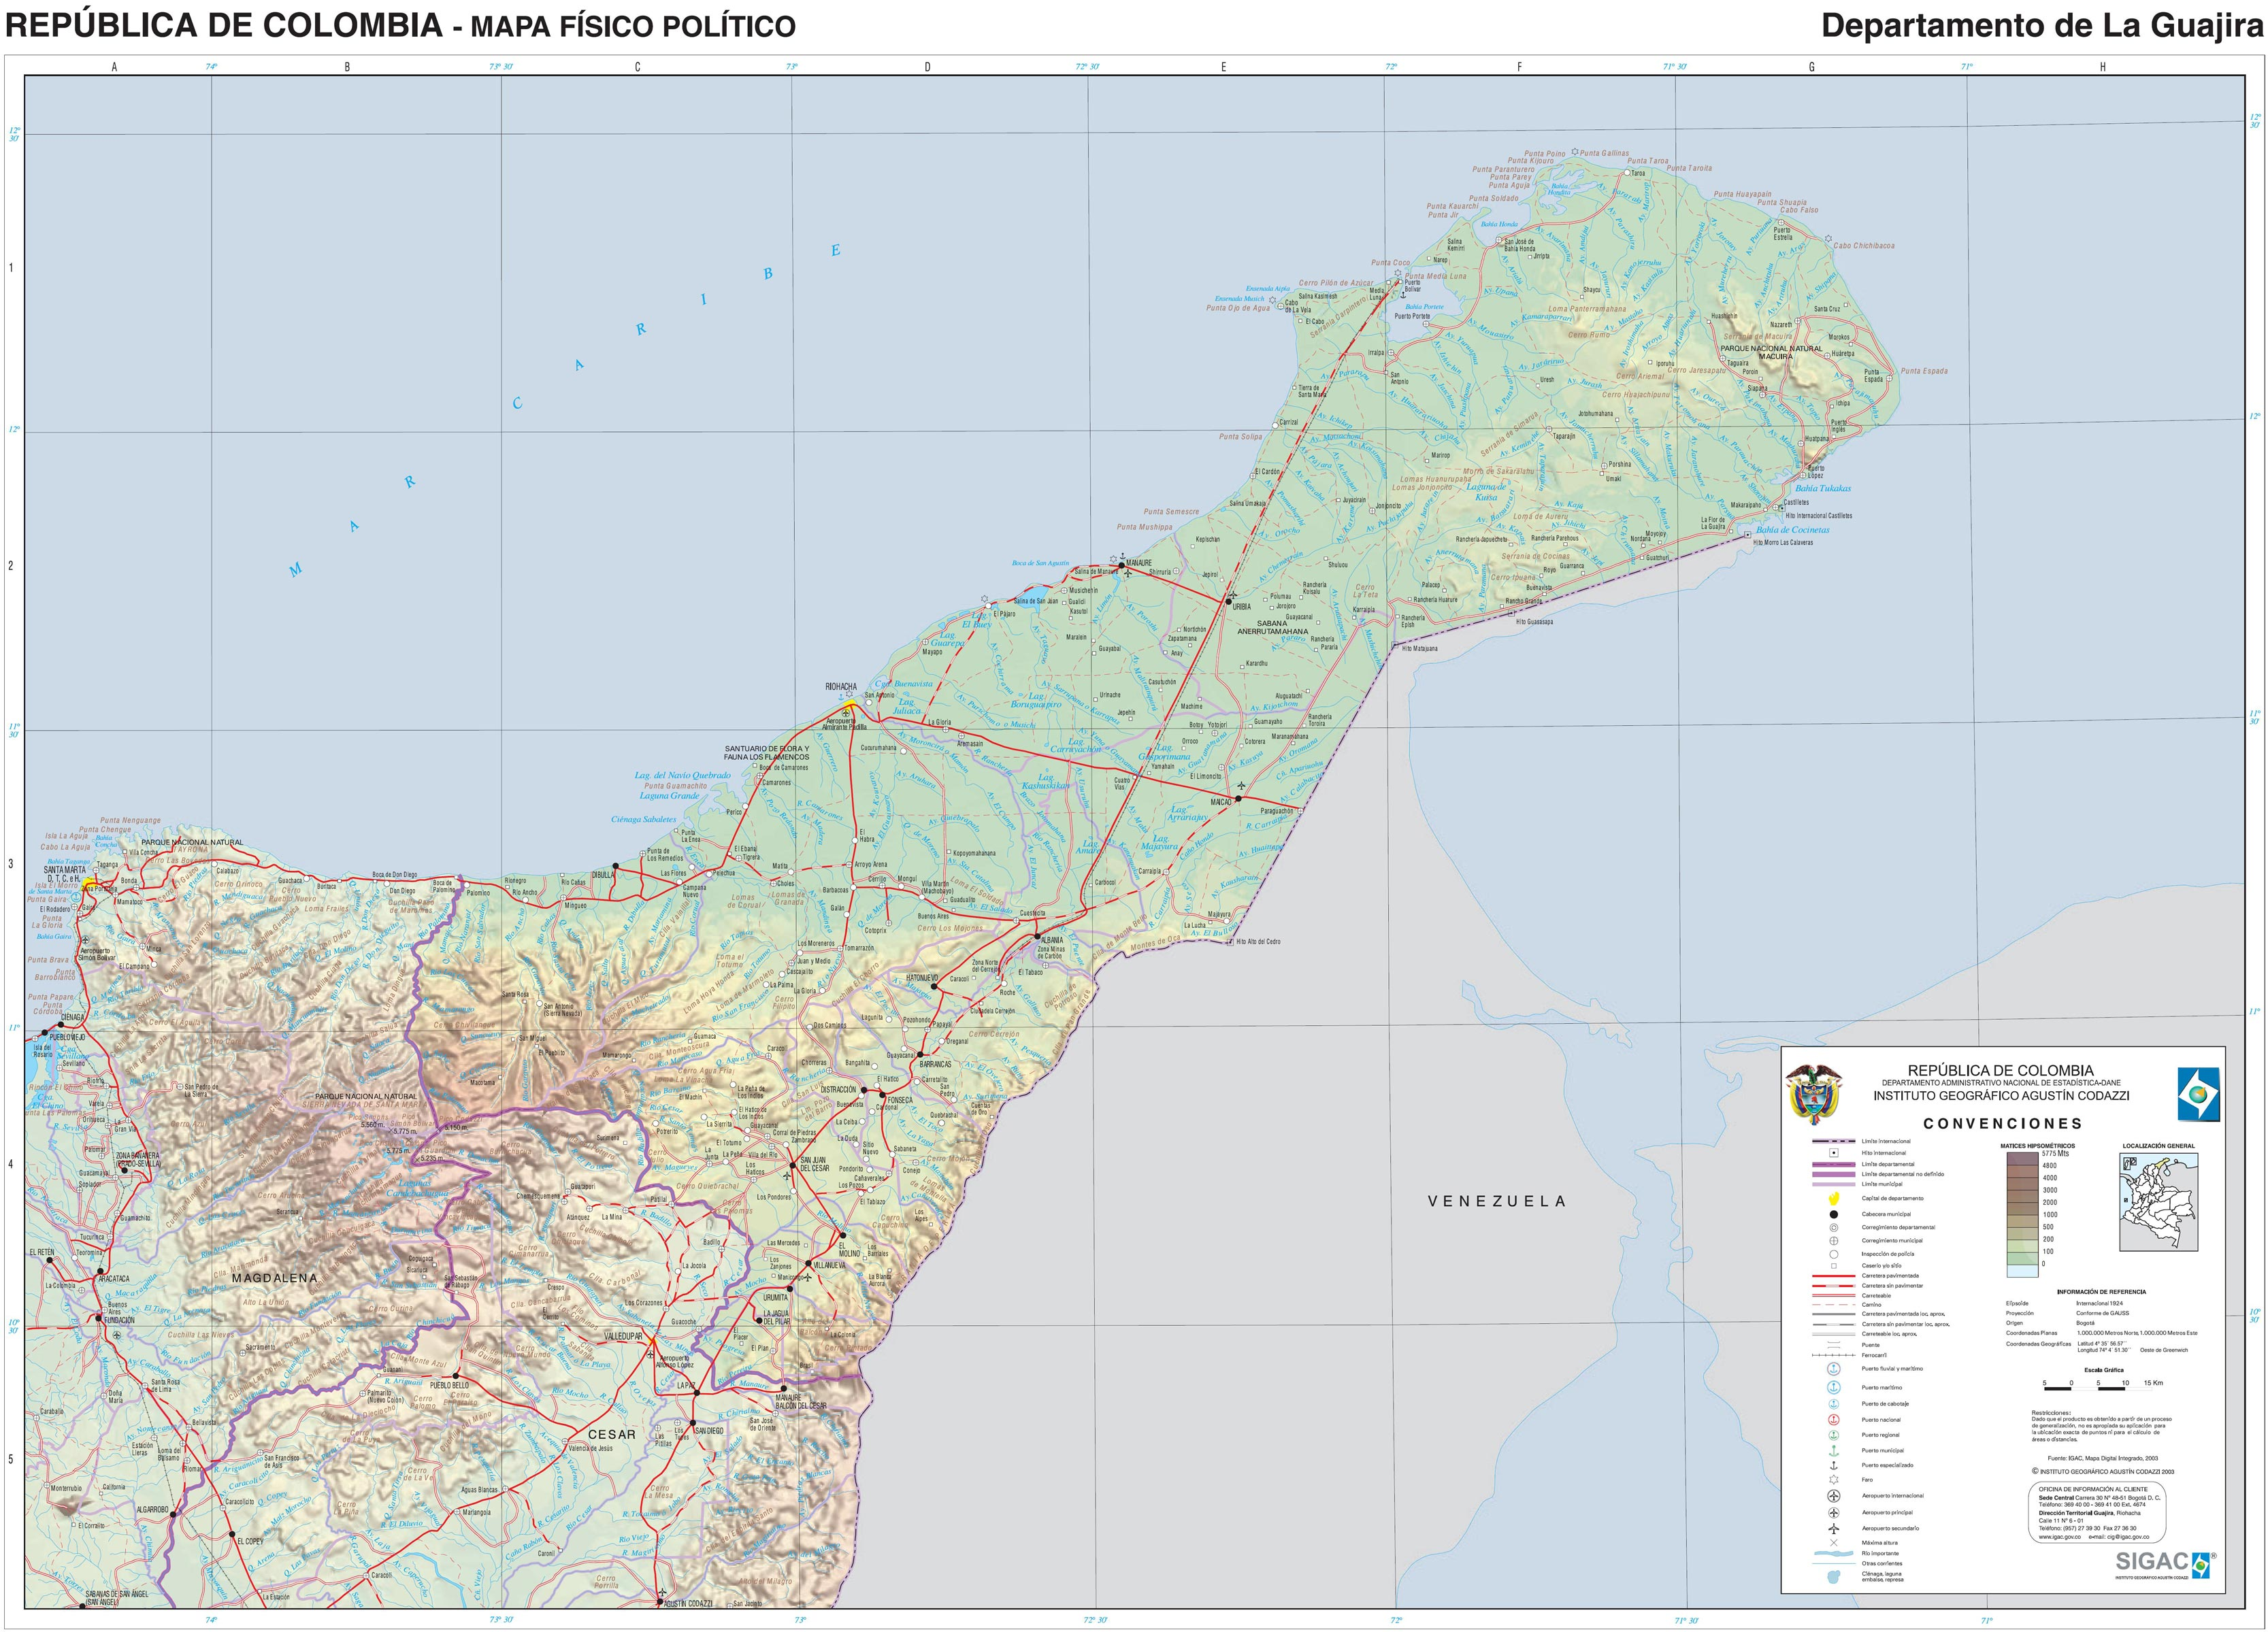 La Guajira large map